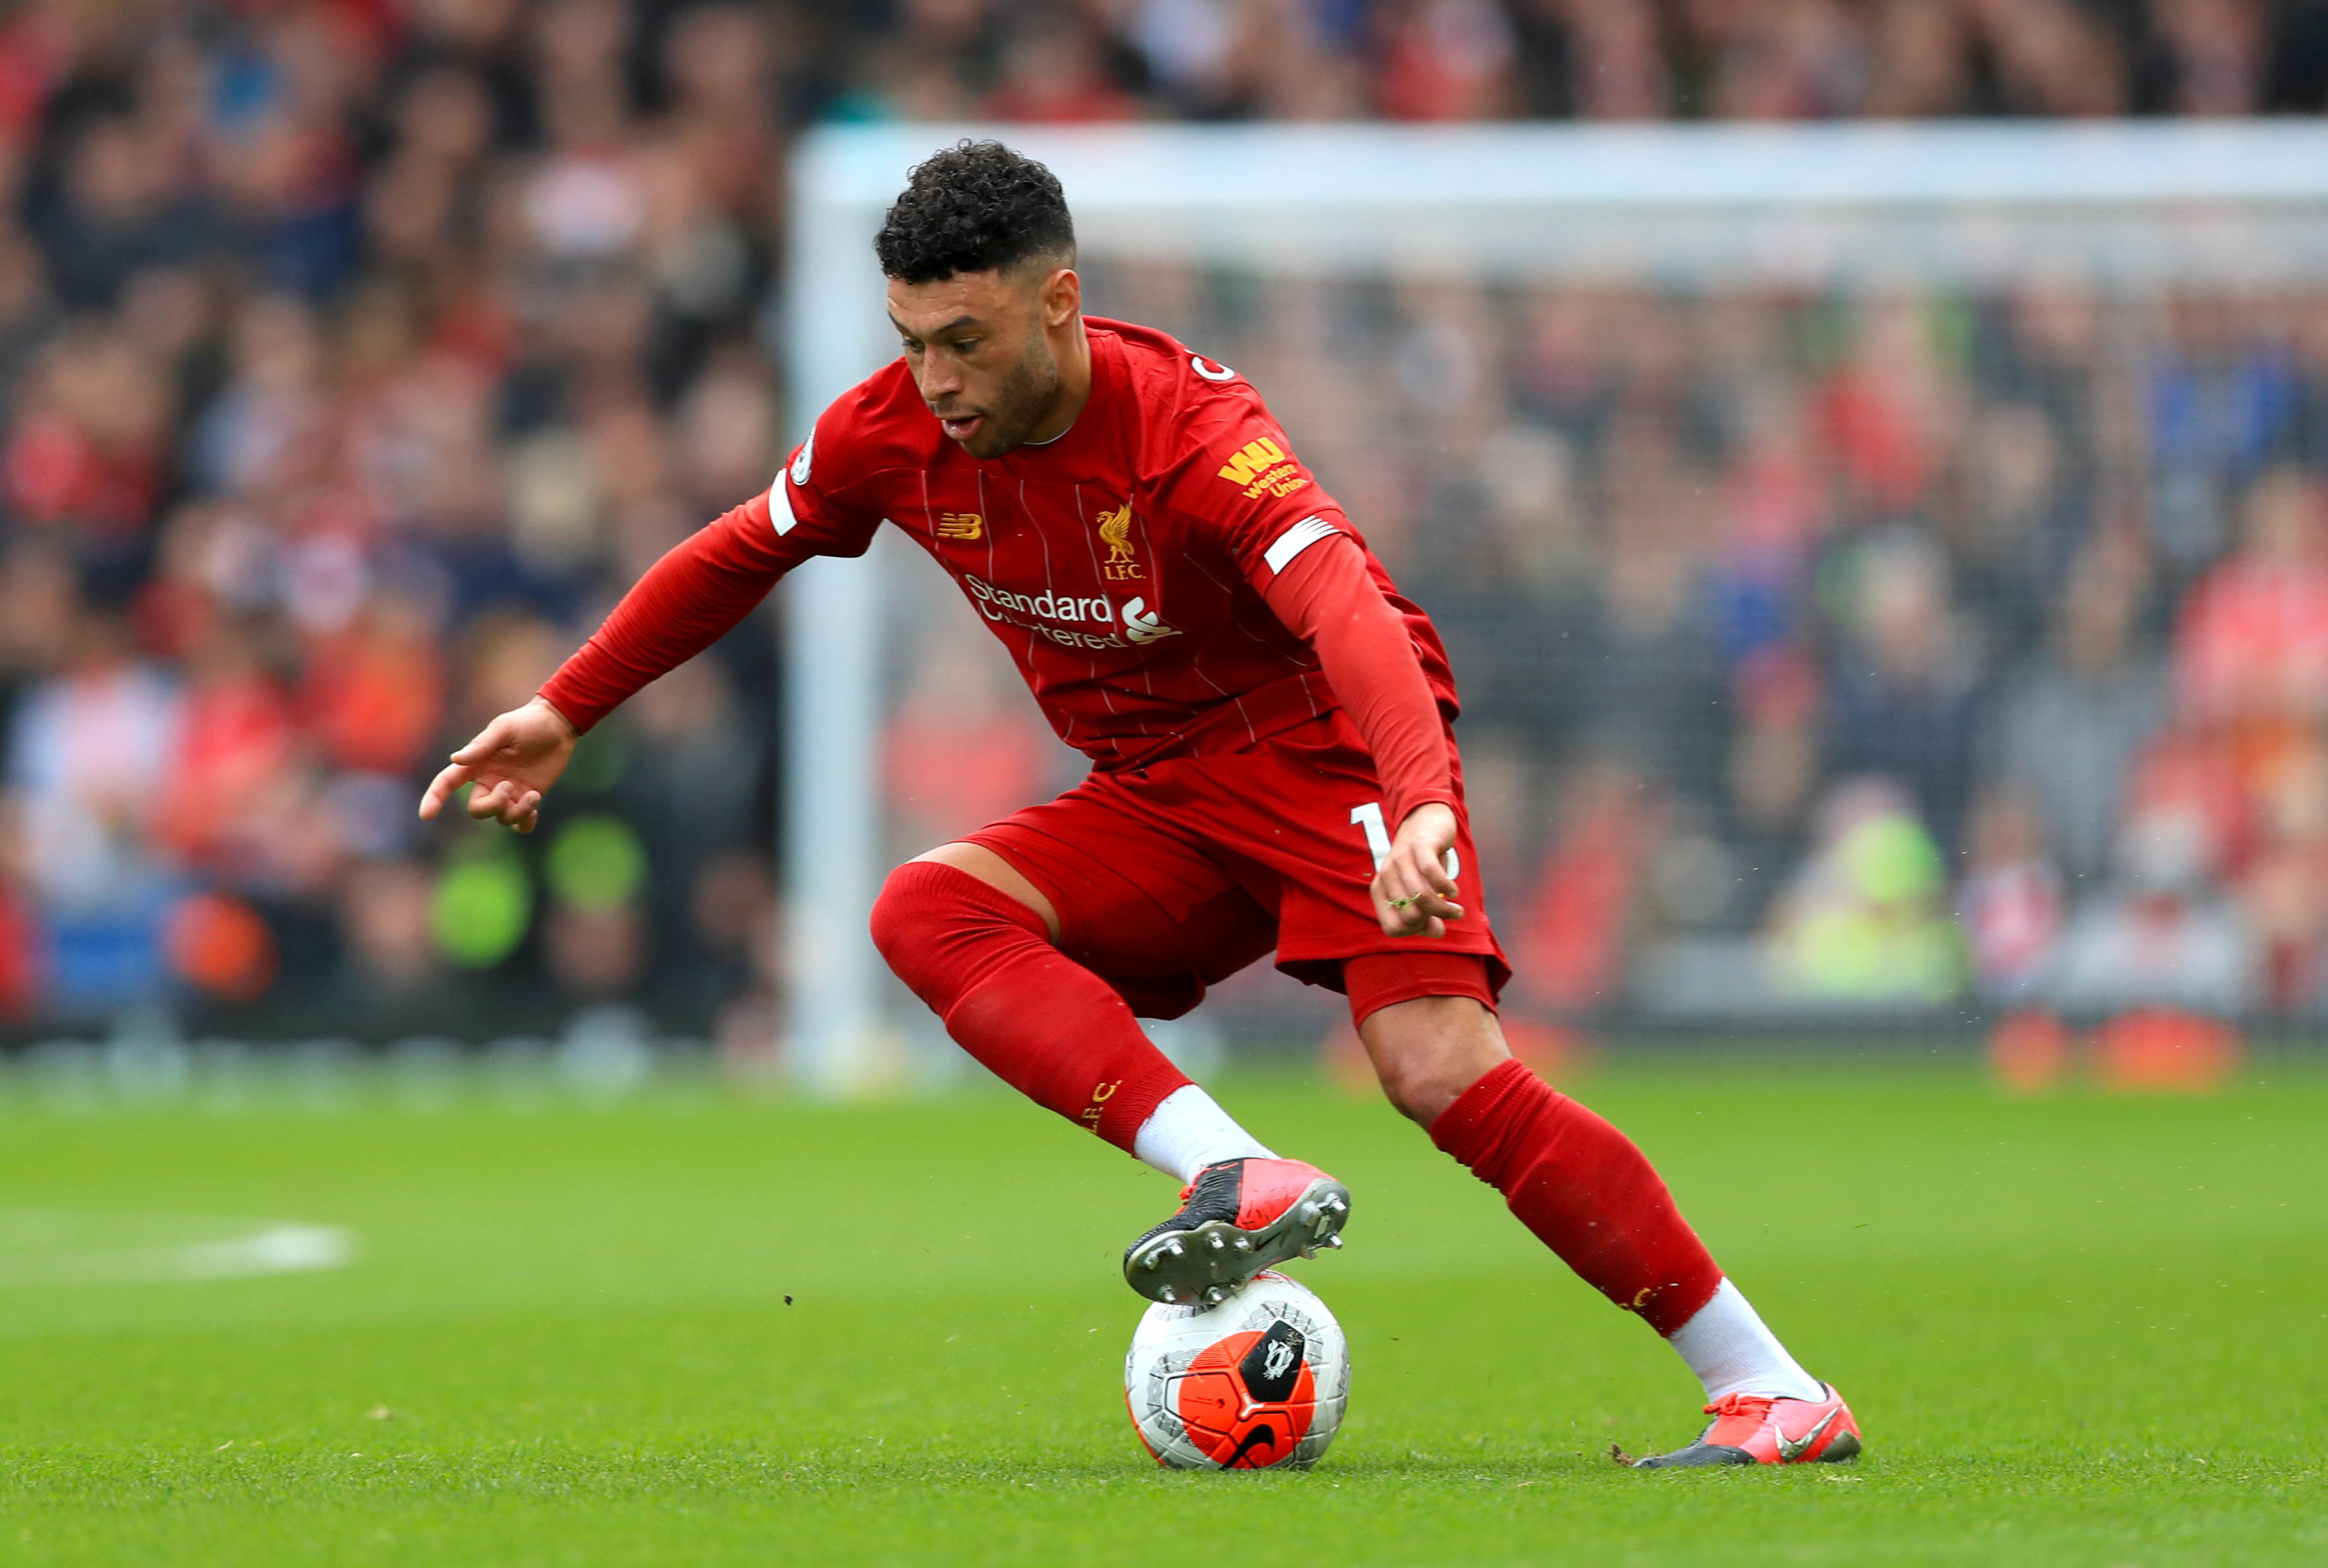 Midfielder Alex Oxlade-Chamberlain admits the players have to push themselves to the next level